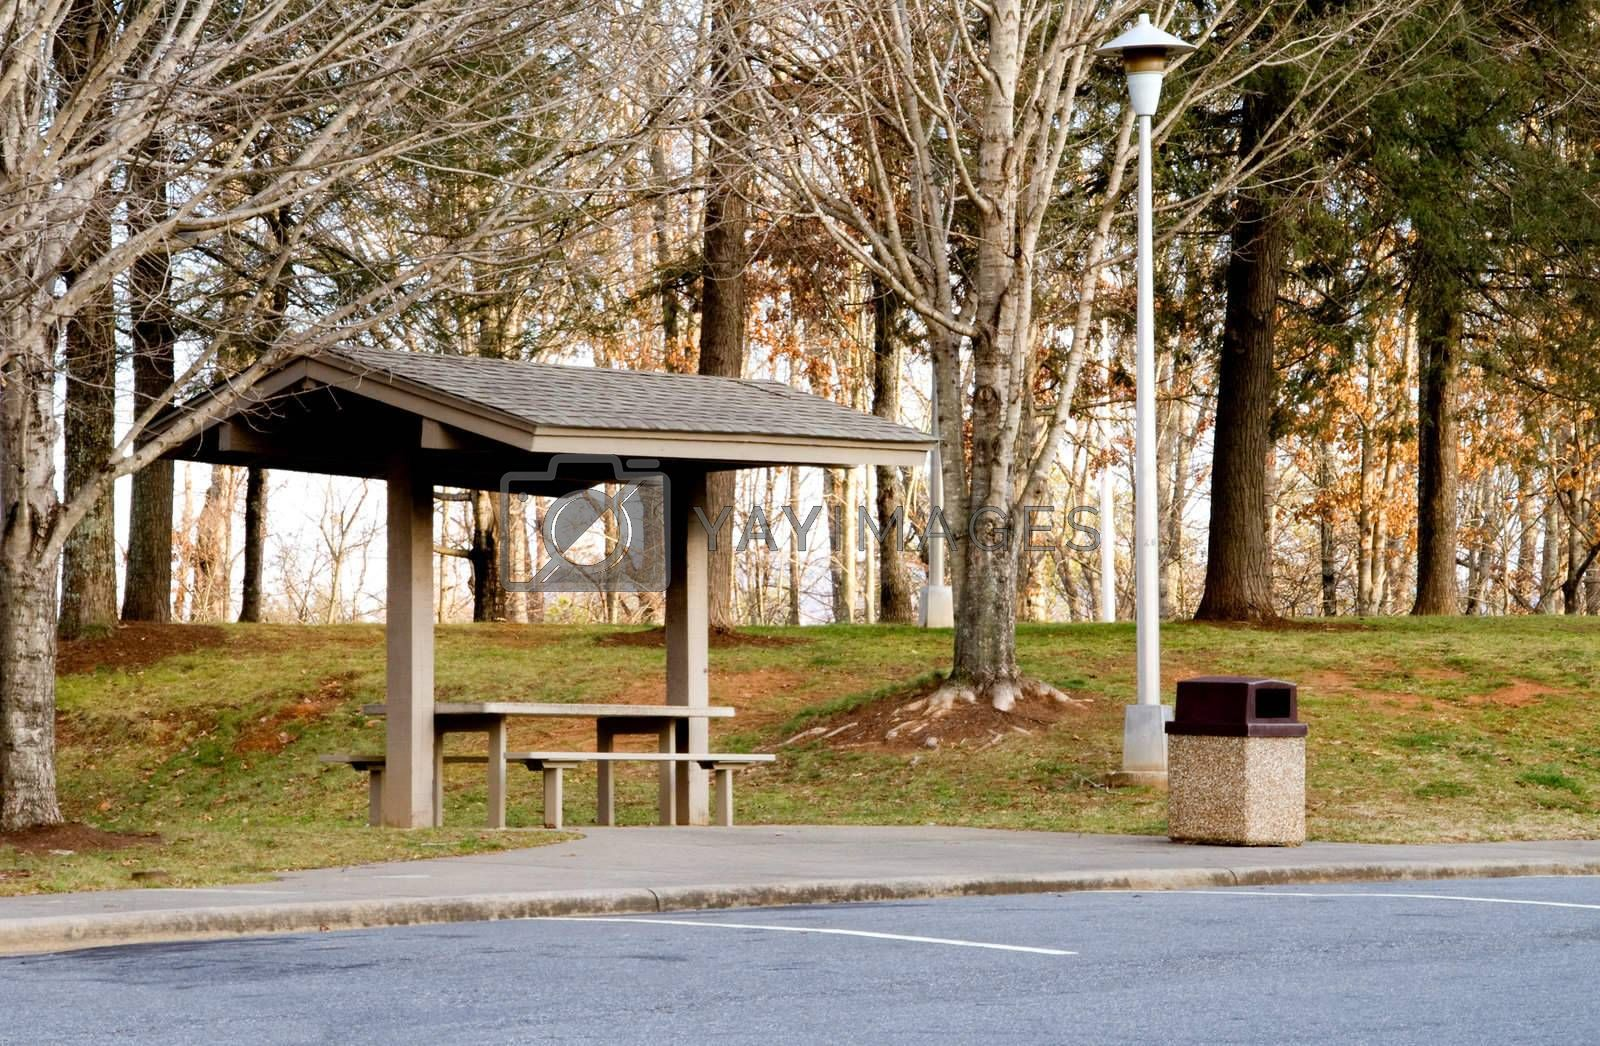 A picnic area at a highway rest stop.